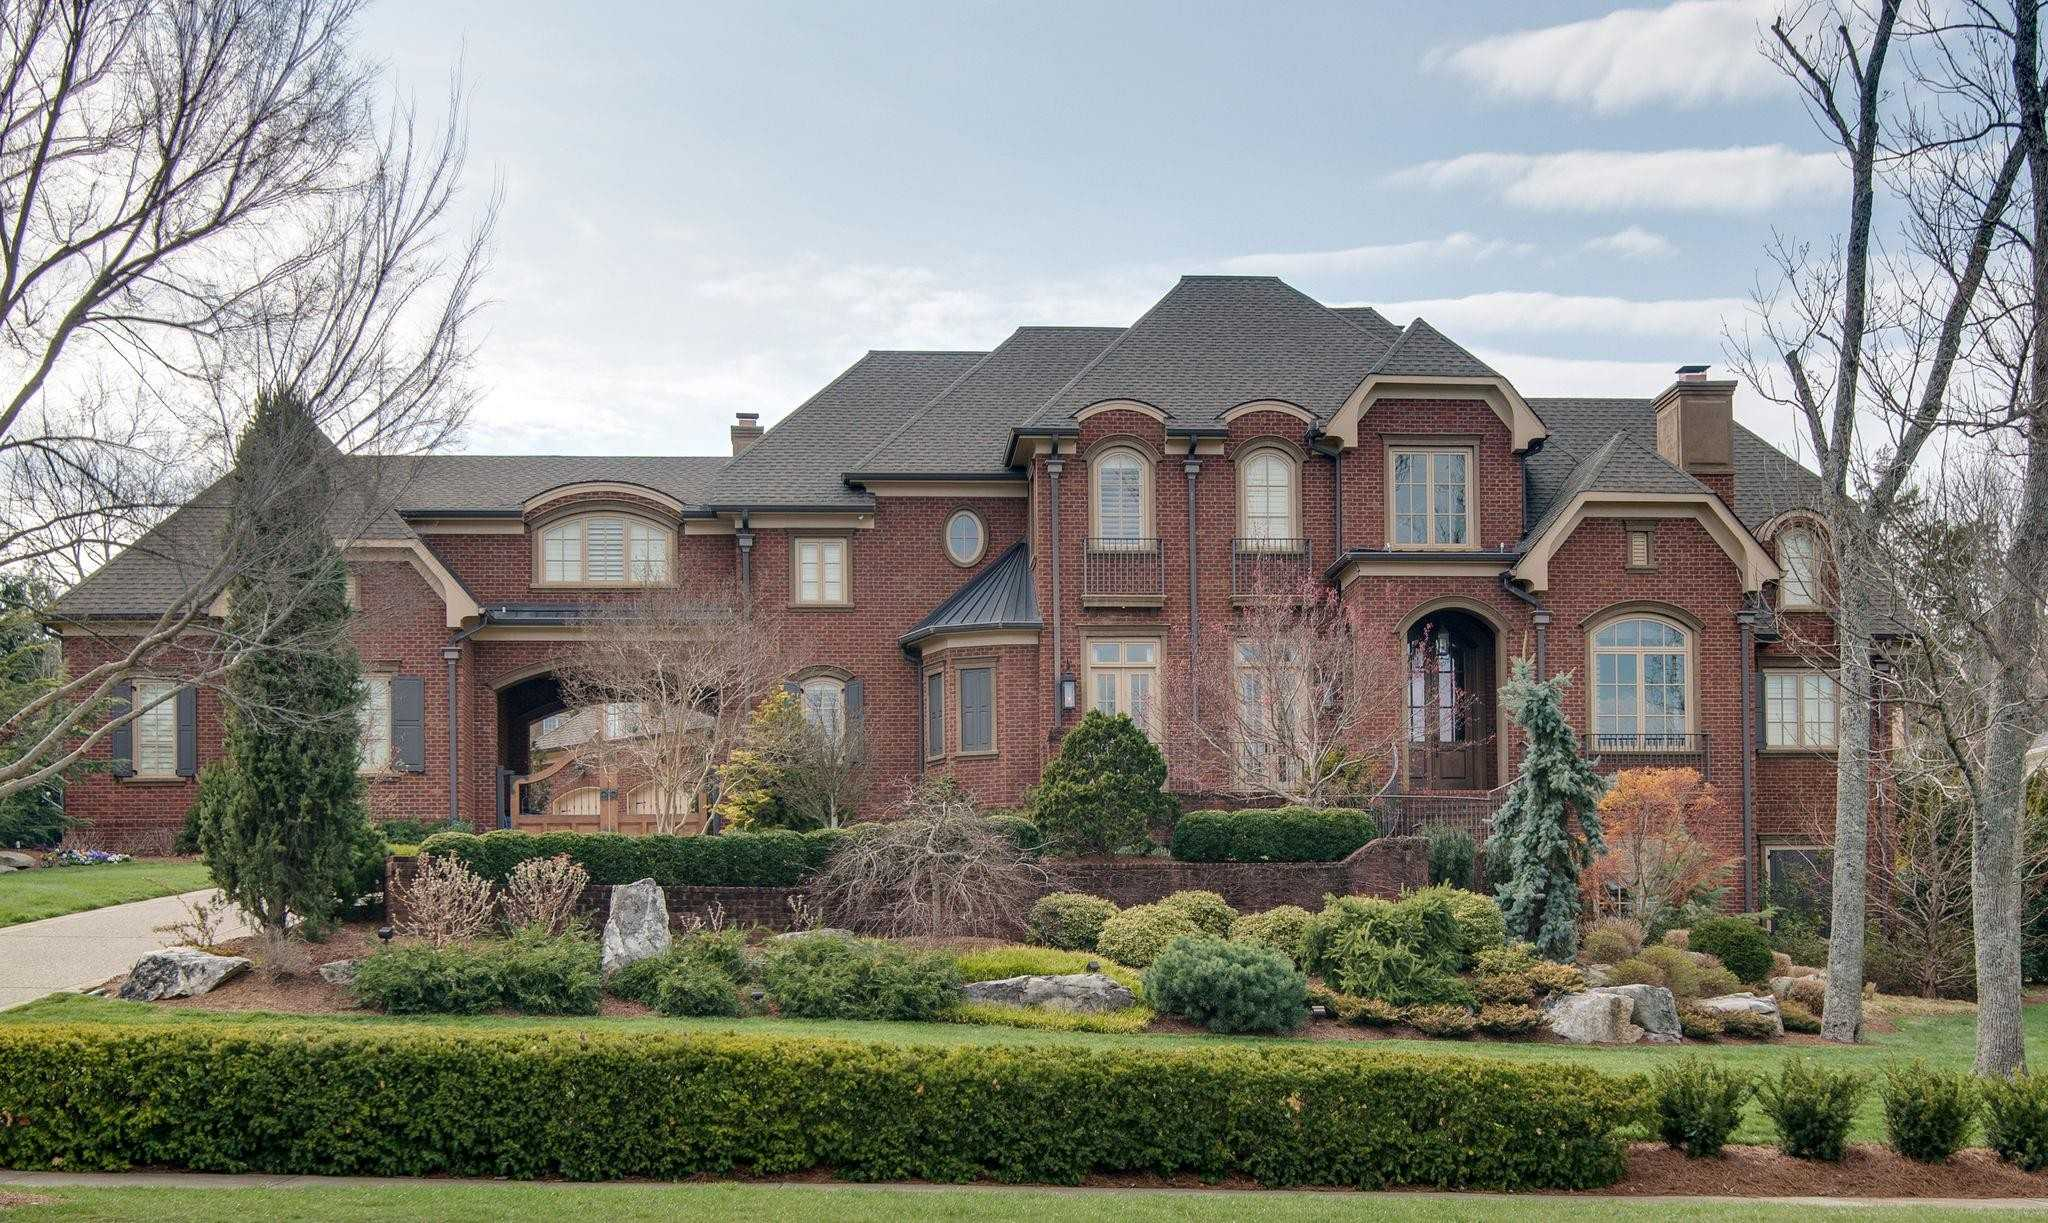 $3,699,000 - 6Br/9Ba -  for Sale in Annandale Sec 2, Brentwood